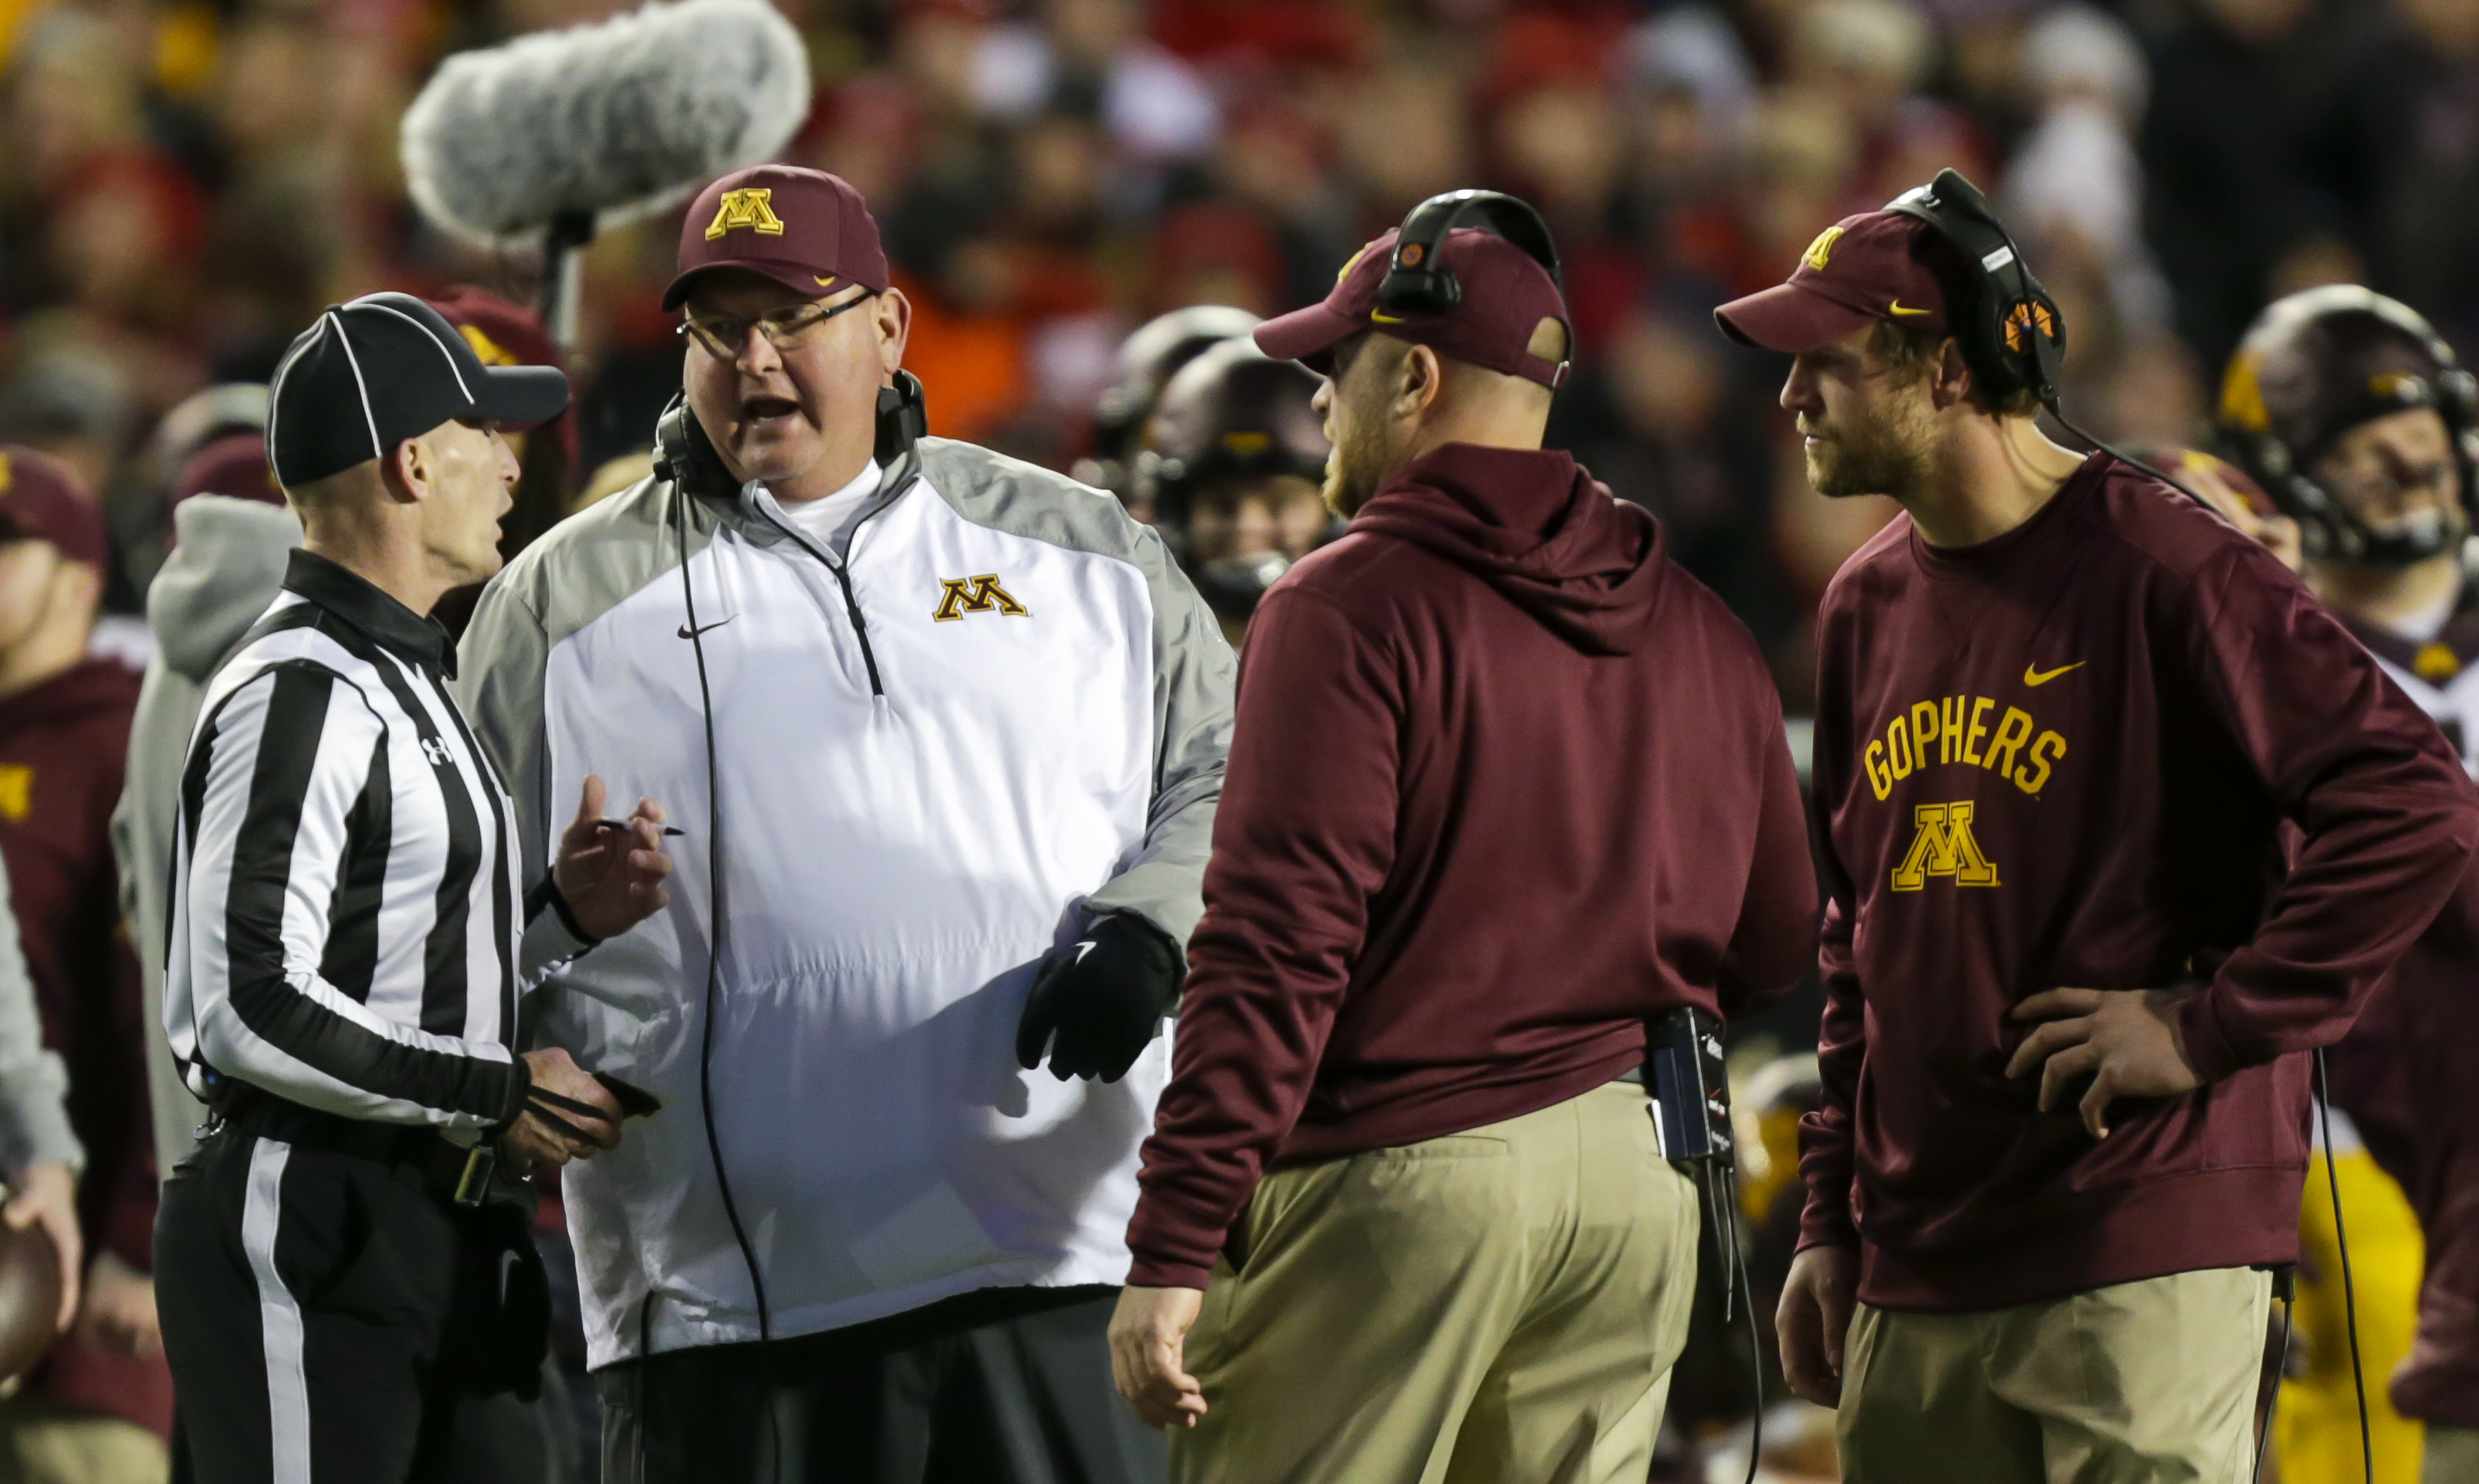 Minnesota coach Tracy Claeys, second from left, talks with an official during the second half of an NCAA college football game against Wisconsin, Saturday, Nov. 26, 2016, in Madison, Wis. Wisconsin won 31-17. (AP Photo/Andy Manis)